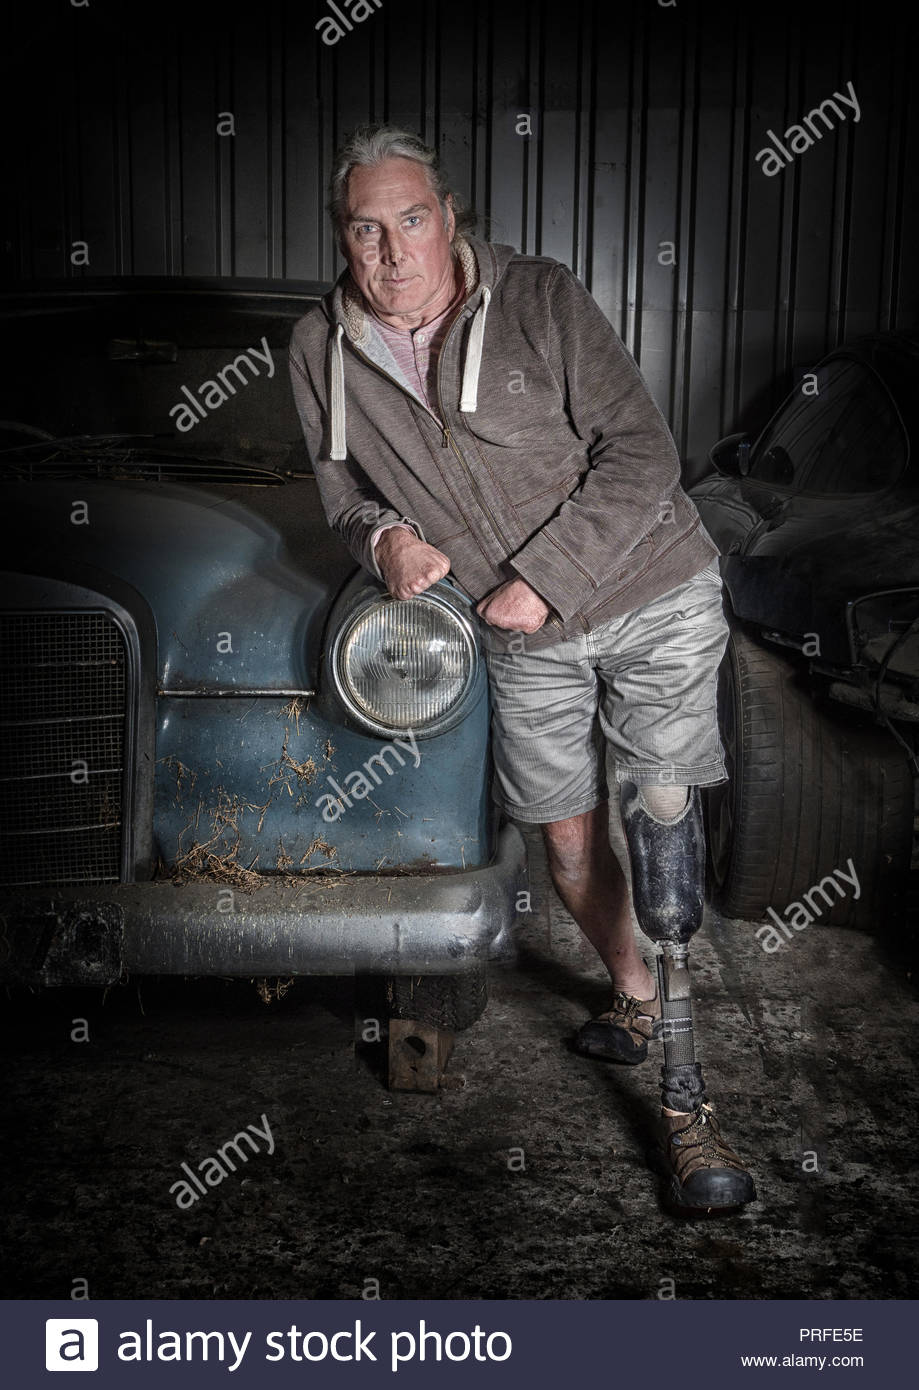 Male amputee with artificial leg and stumps for hands - Stock Image